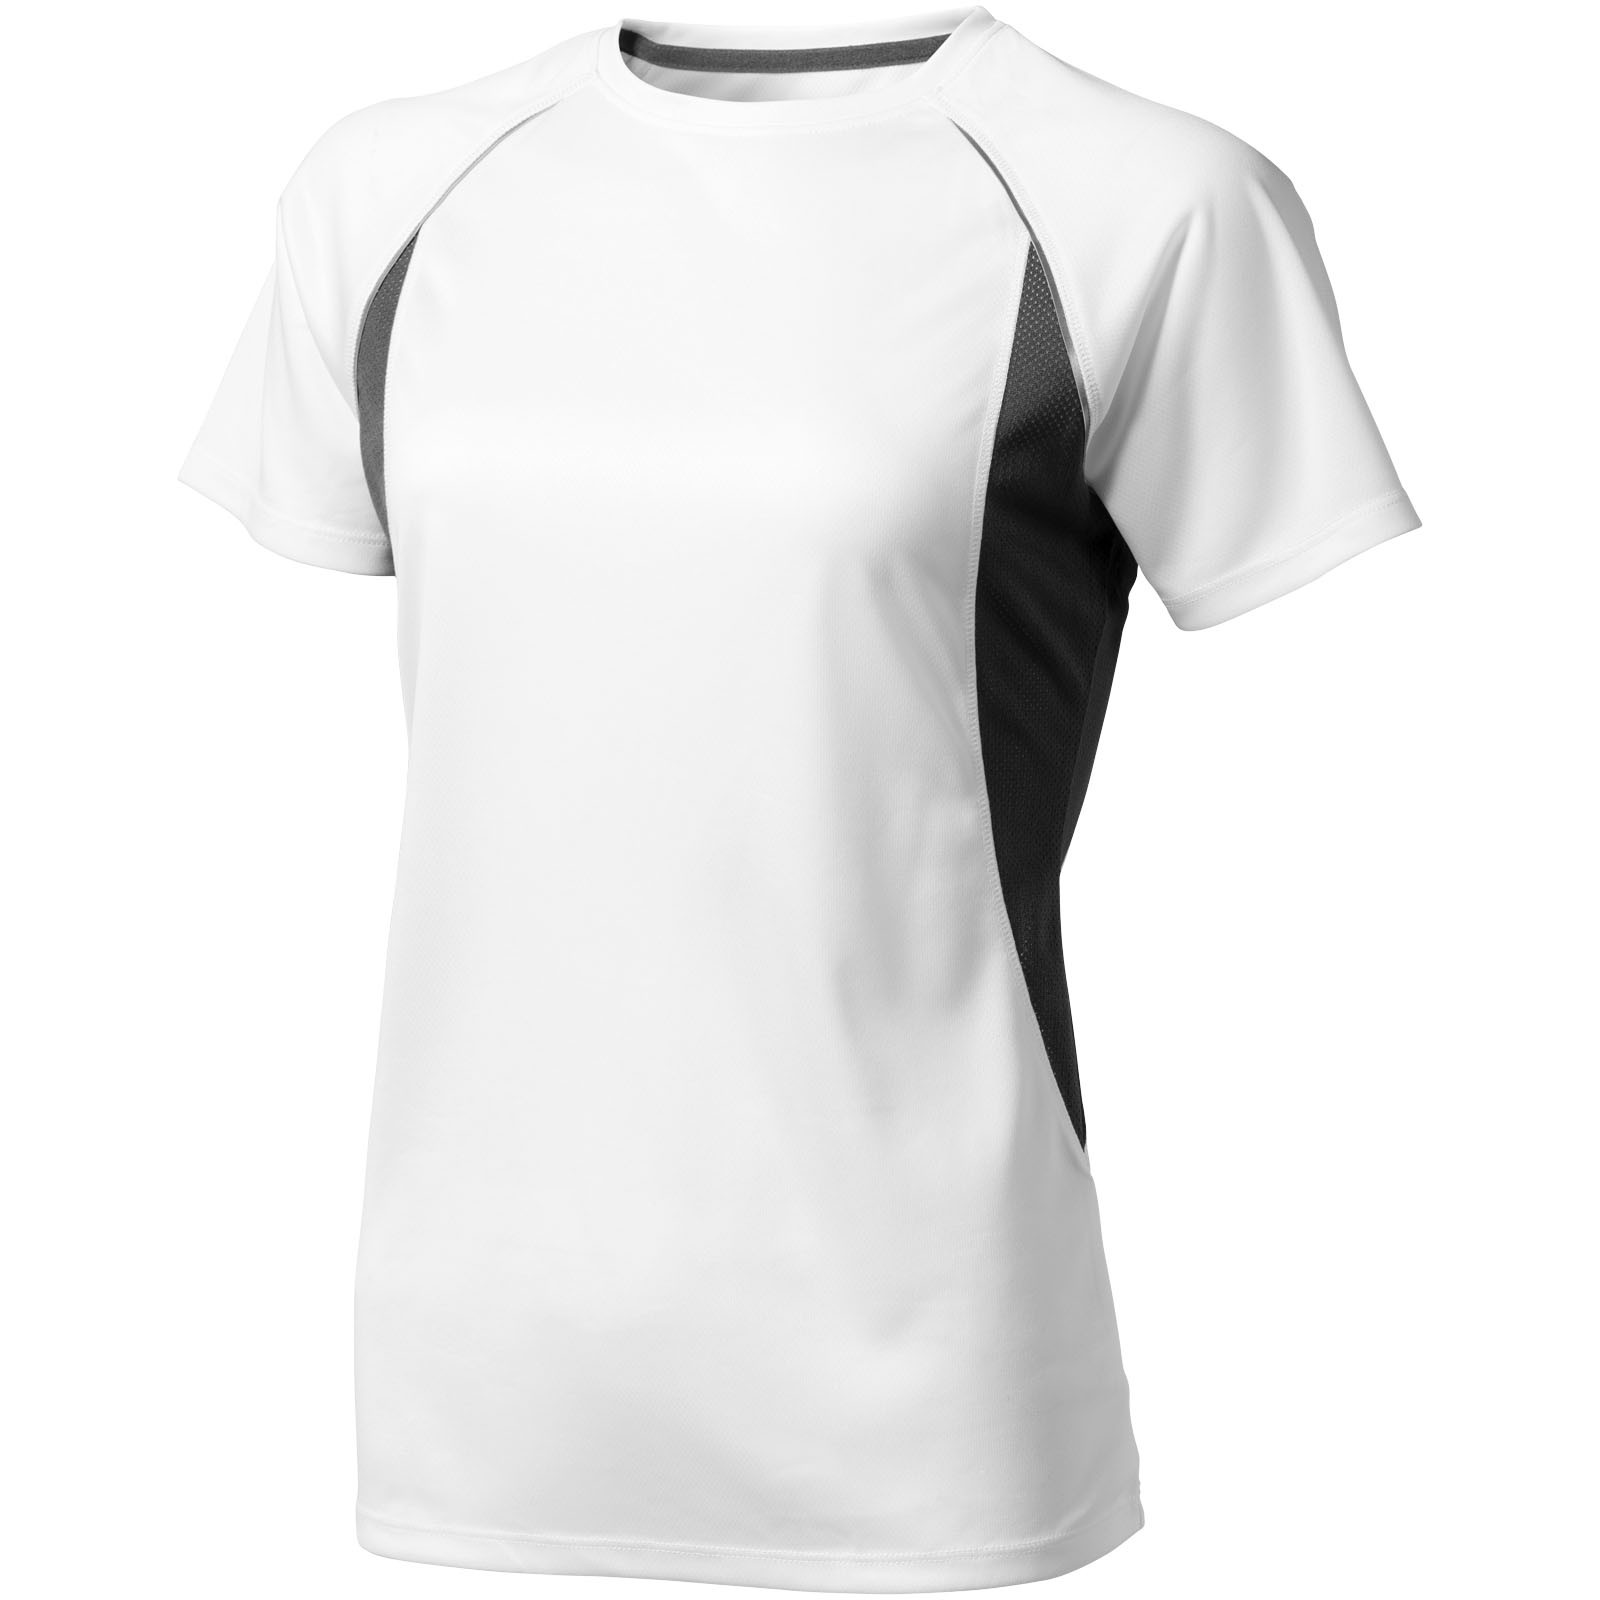 Quebec T-Shirt cool fit für Damen - Weiss / Anthrazit / XS